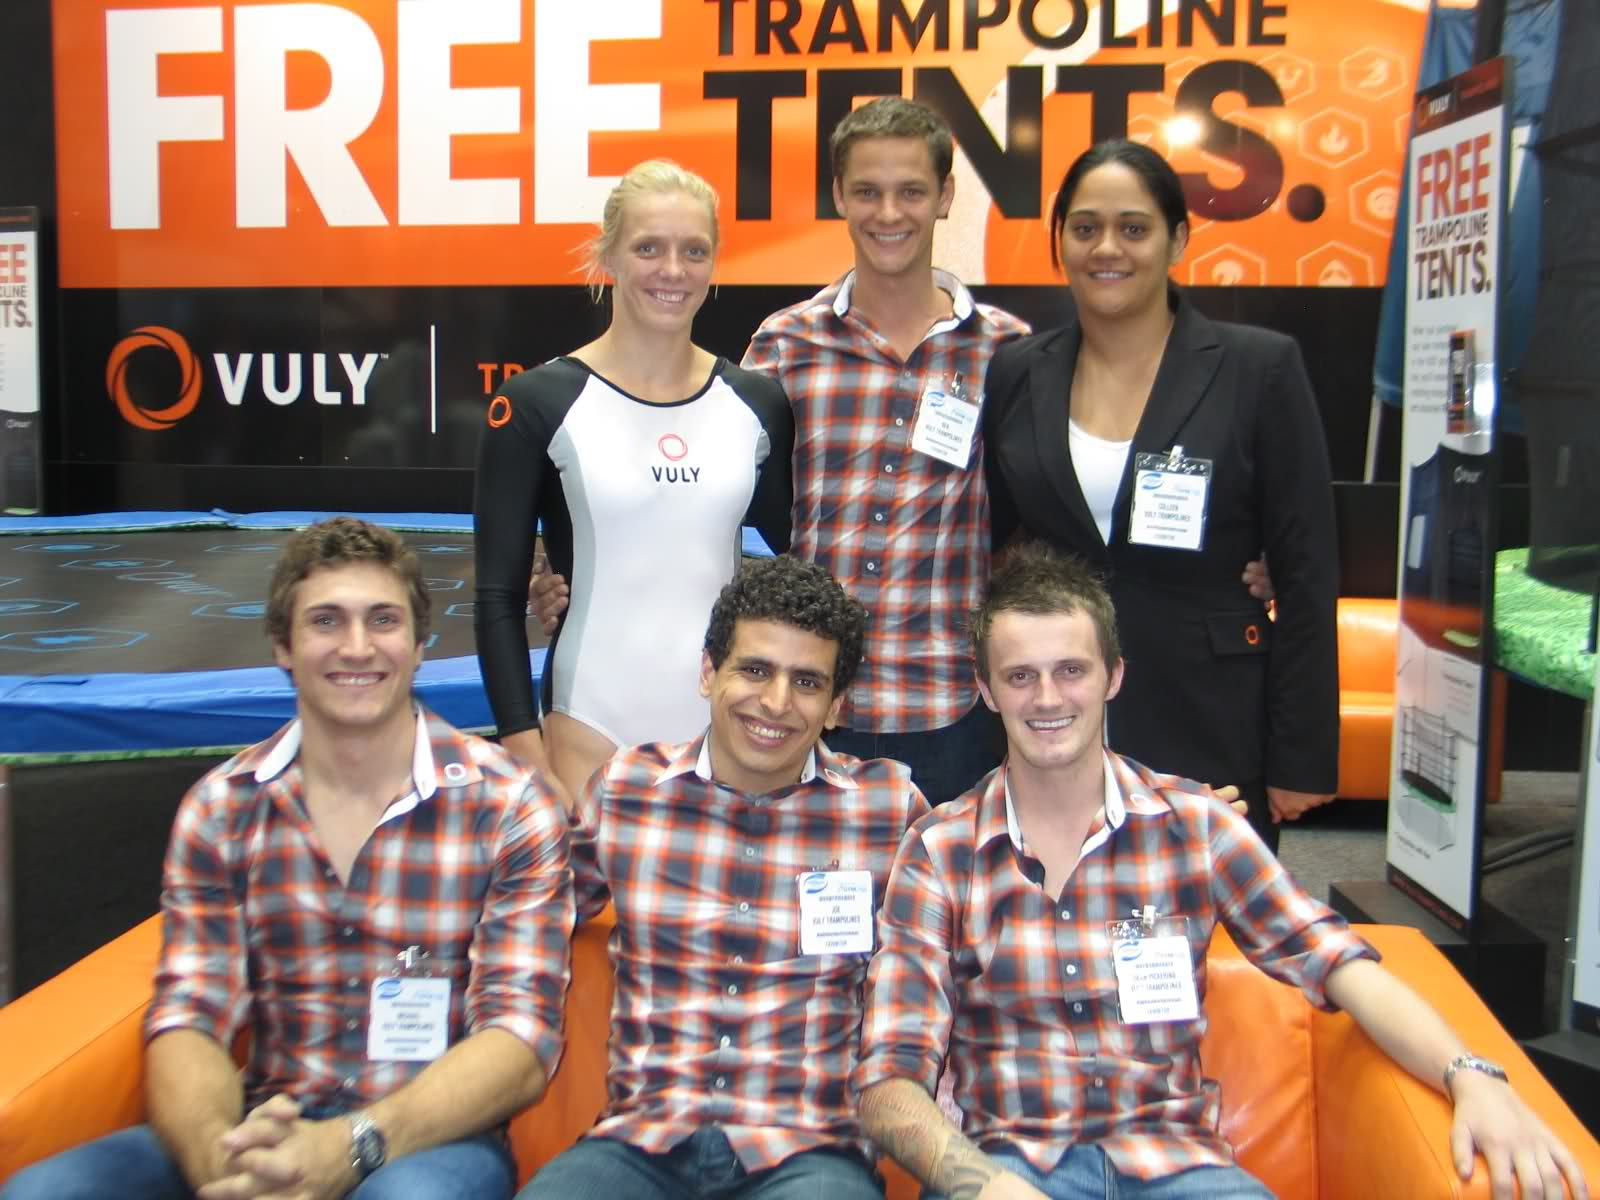 Trampoline, Trampolines, Trampolines Sydney, Sydney Trampolines, Trampolines Fitness Expo, Fitness Expo Trampolines.